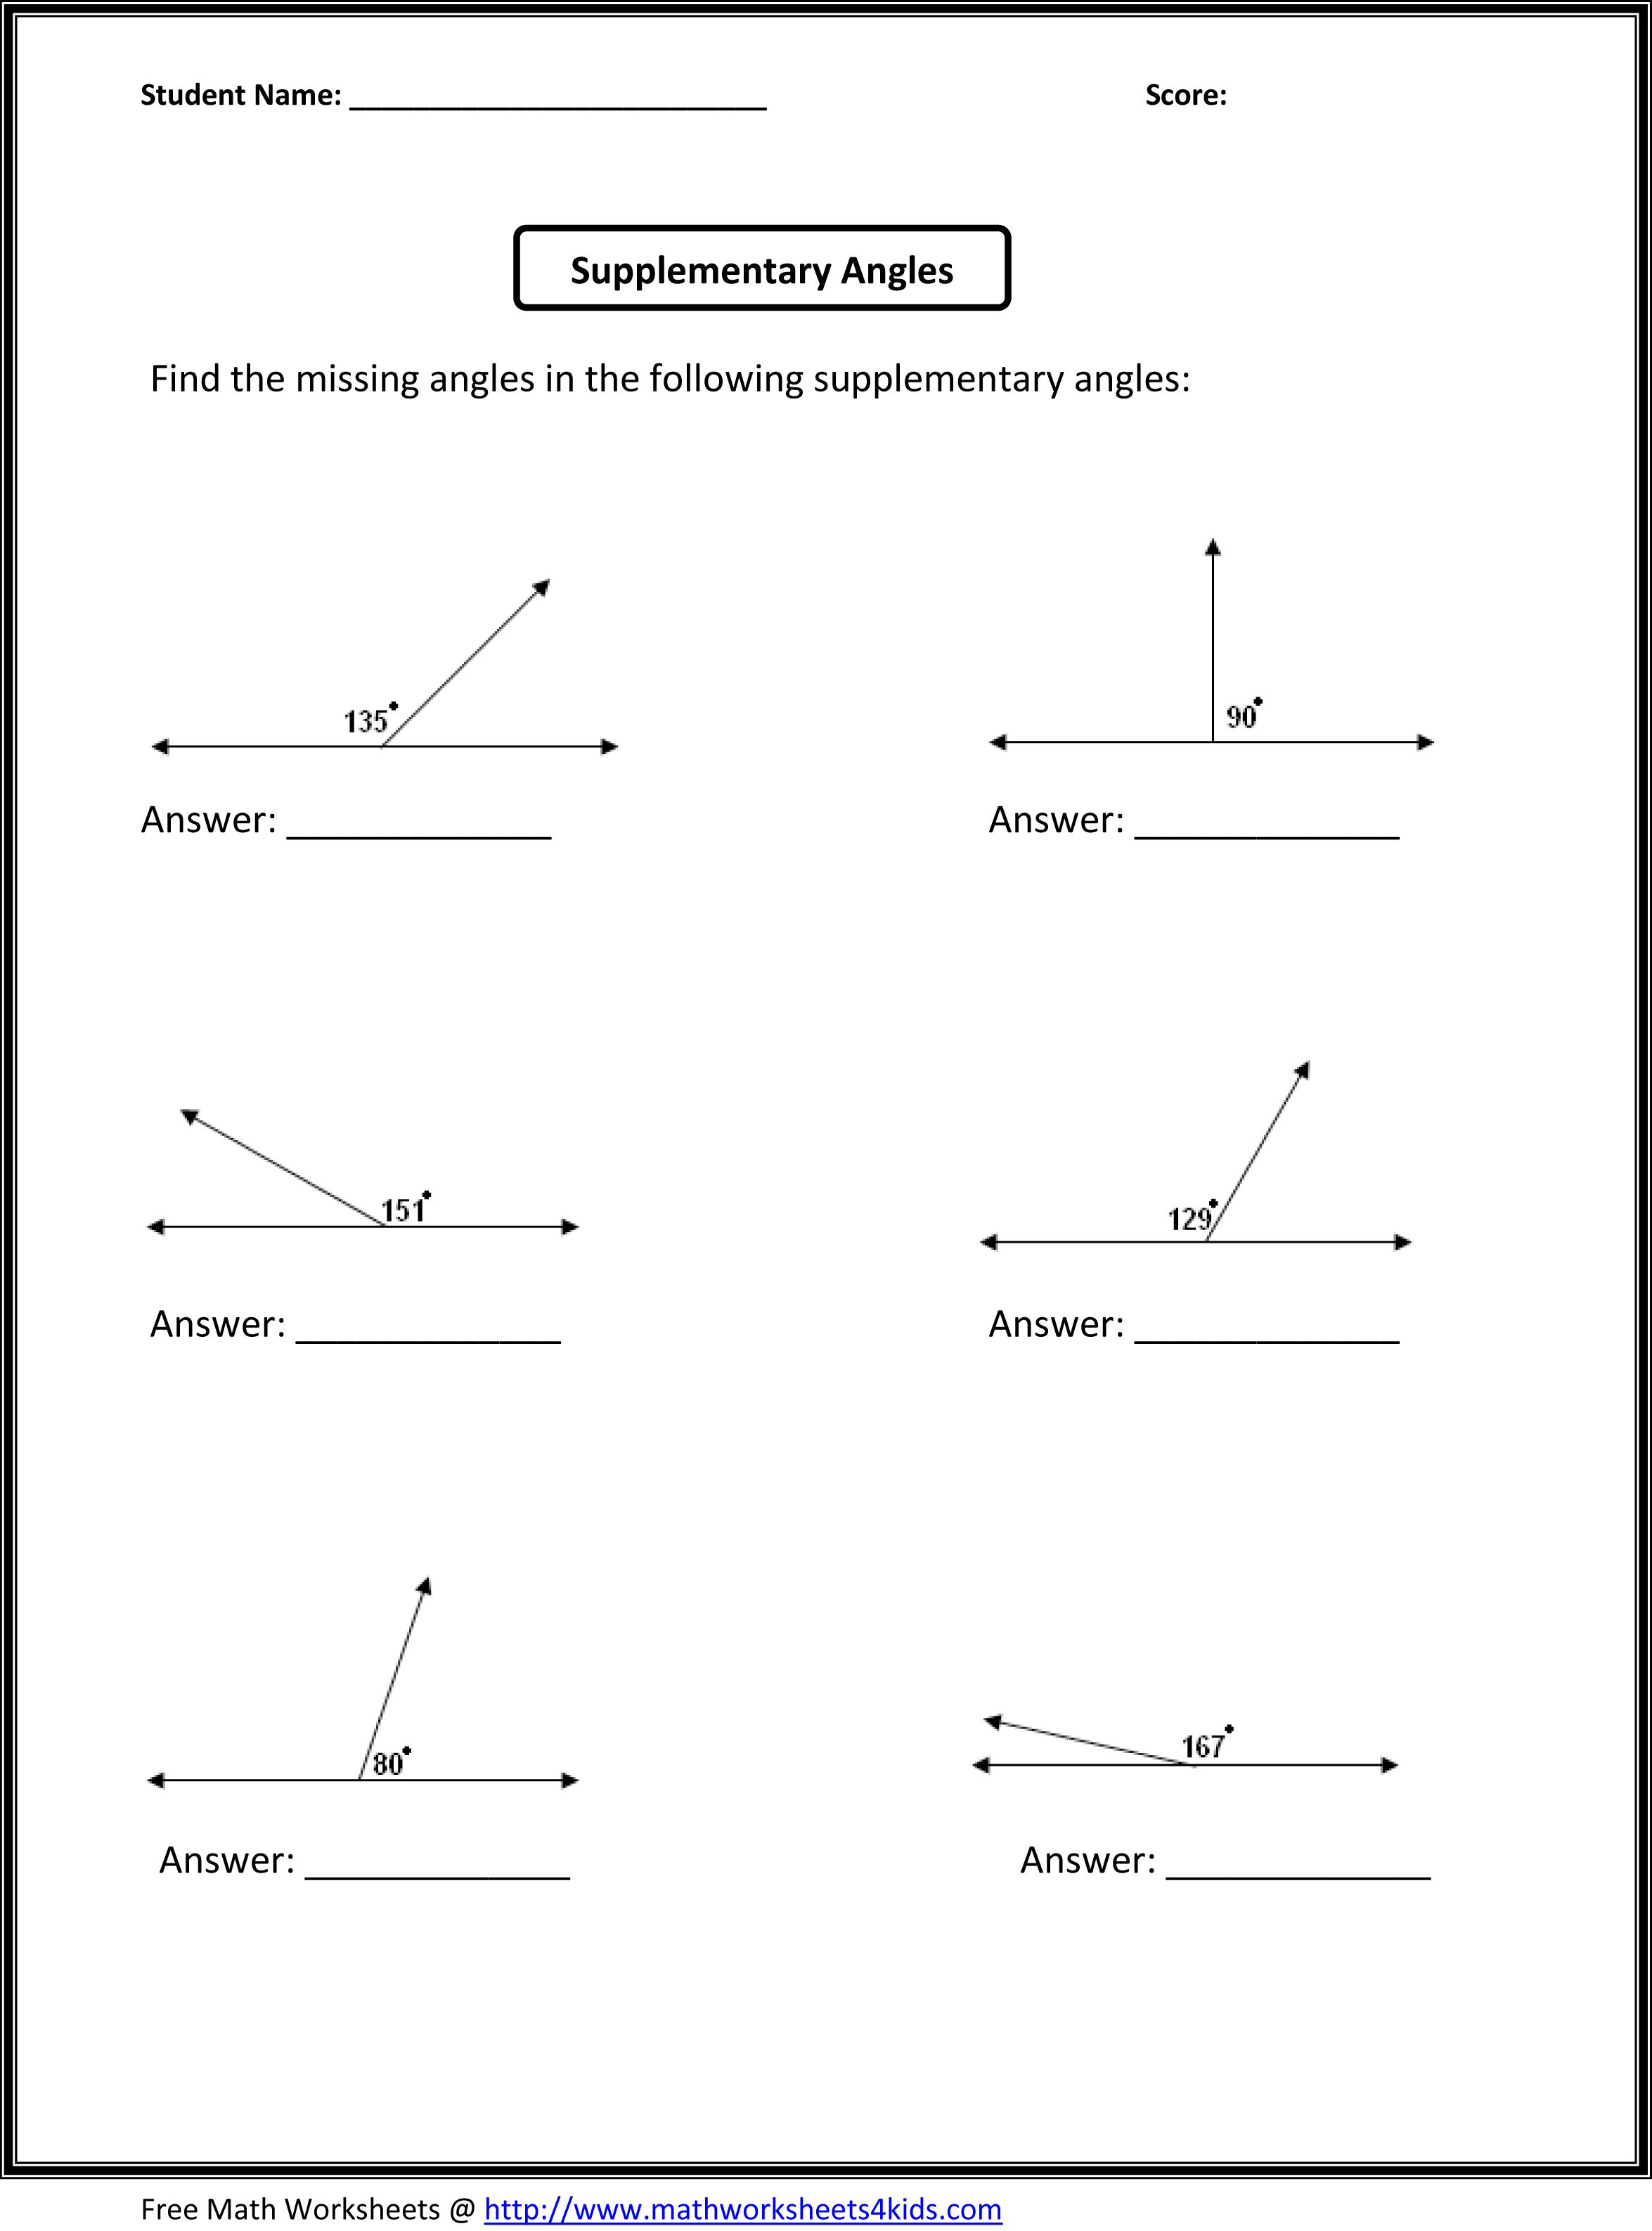 Printables Geometry Worksheet Pdf worksheet geometry for 6th grade noconformity free 1000 images about on pinterest pythagorean theorem angles and worksheets